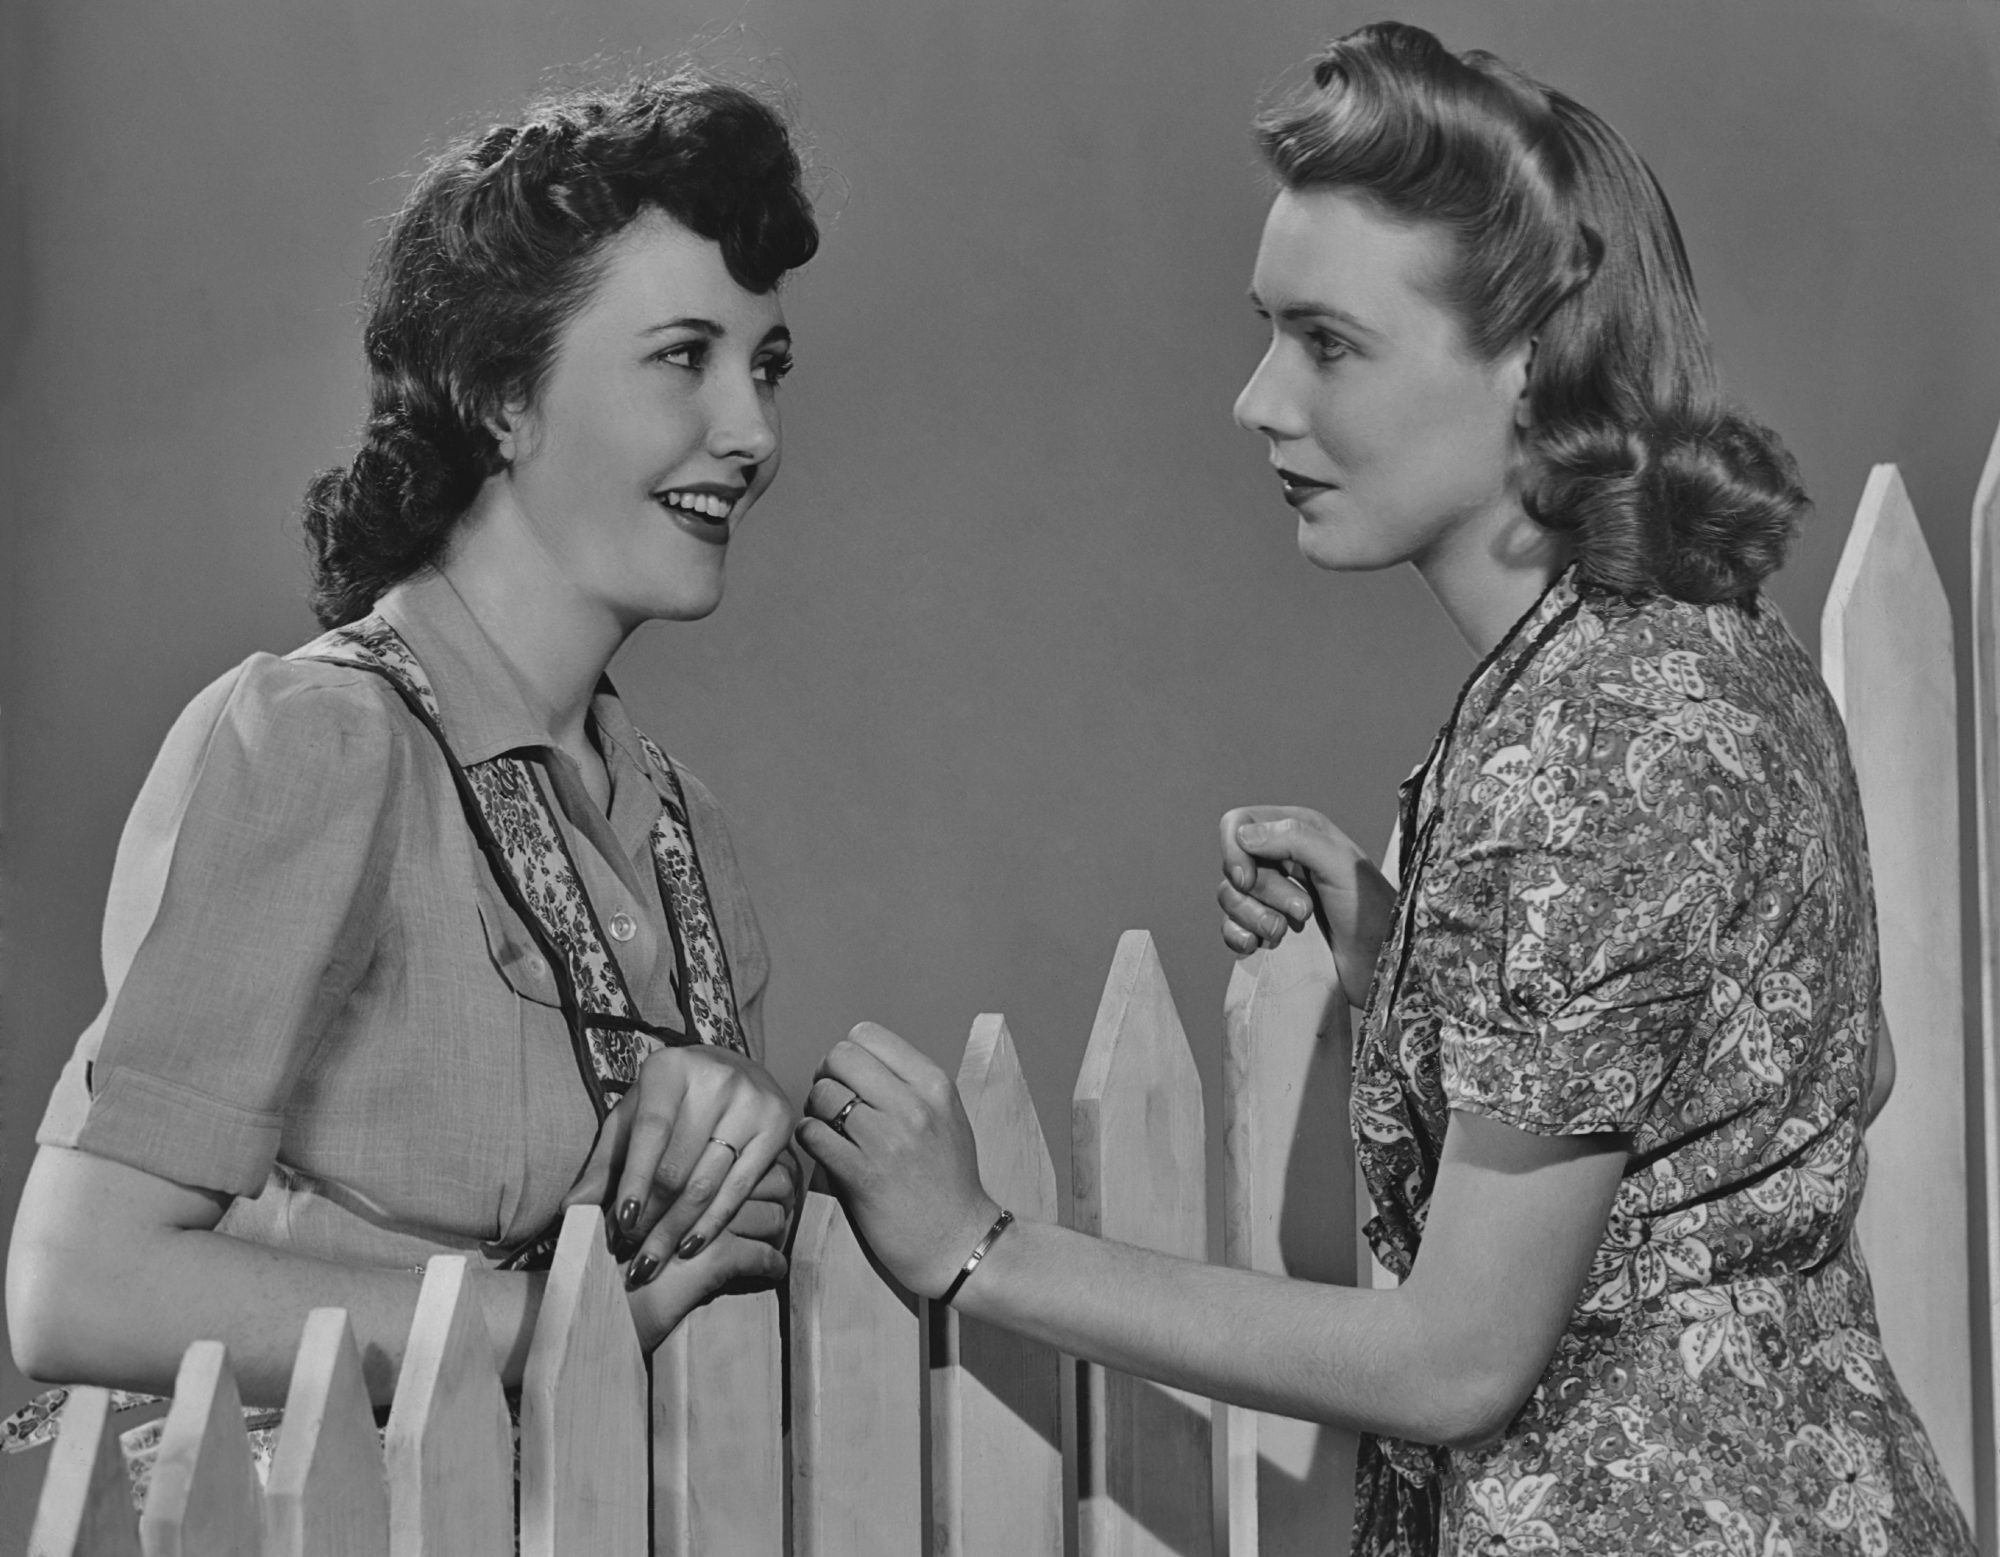 Two Women Talking Over Fence